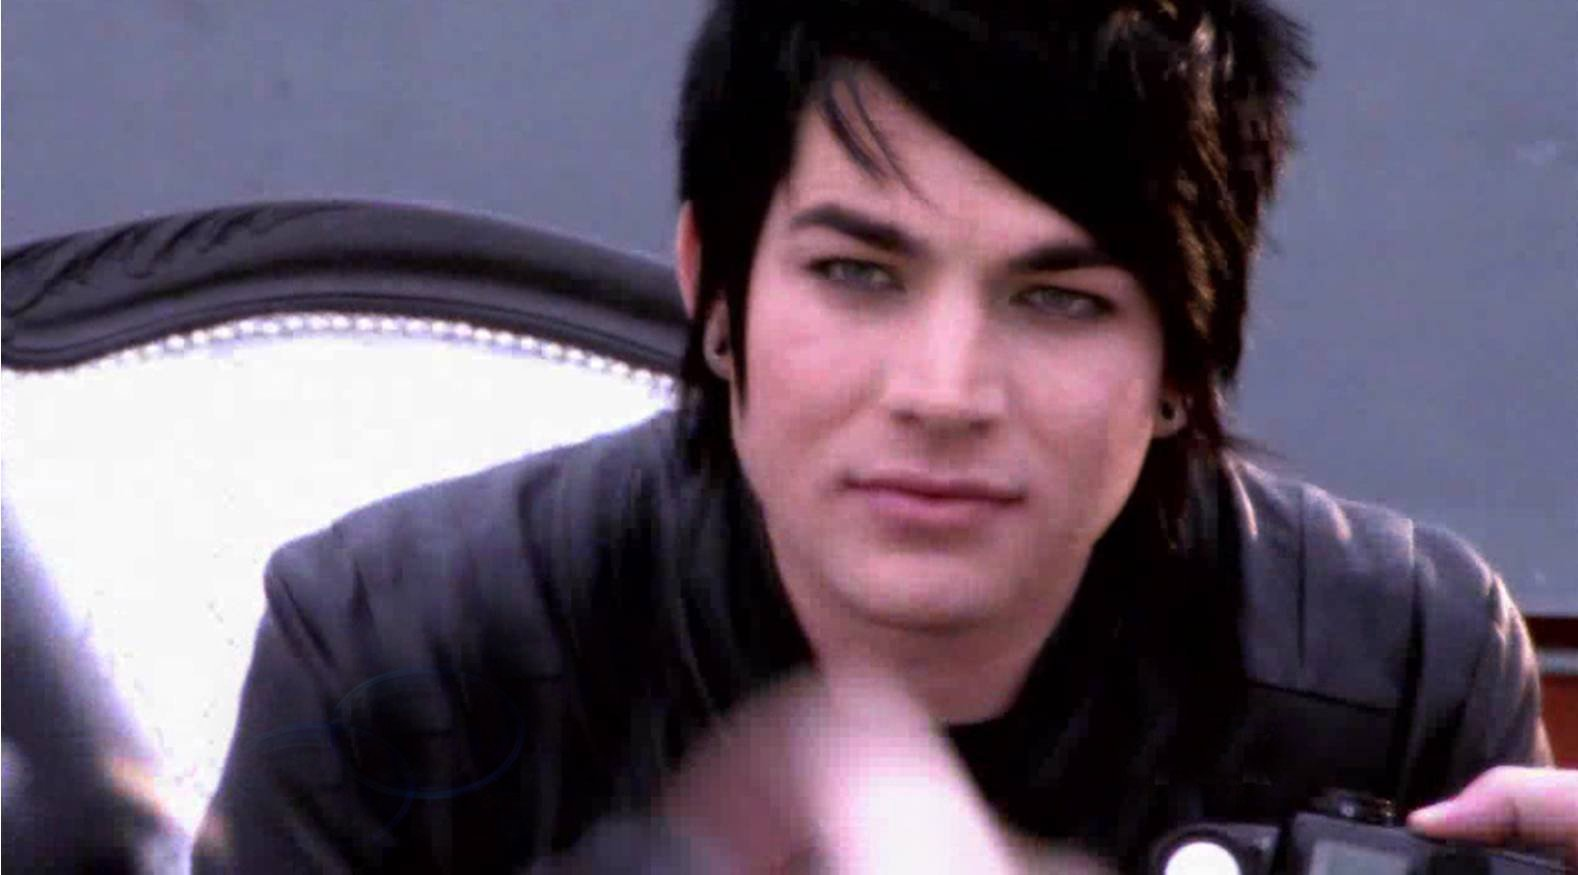 #Happy9thAnniversaryAdamLambert �� @adamlambert at one of many photoshoots while on @AmericanIdol... �� https://t.co/Z3e0oP7FeL